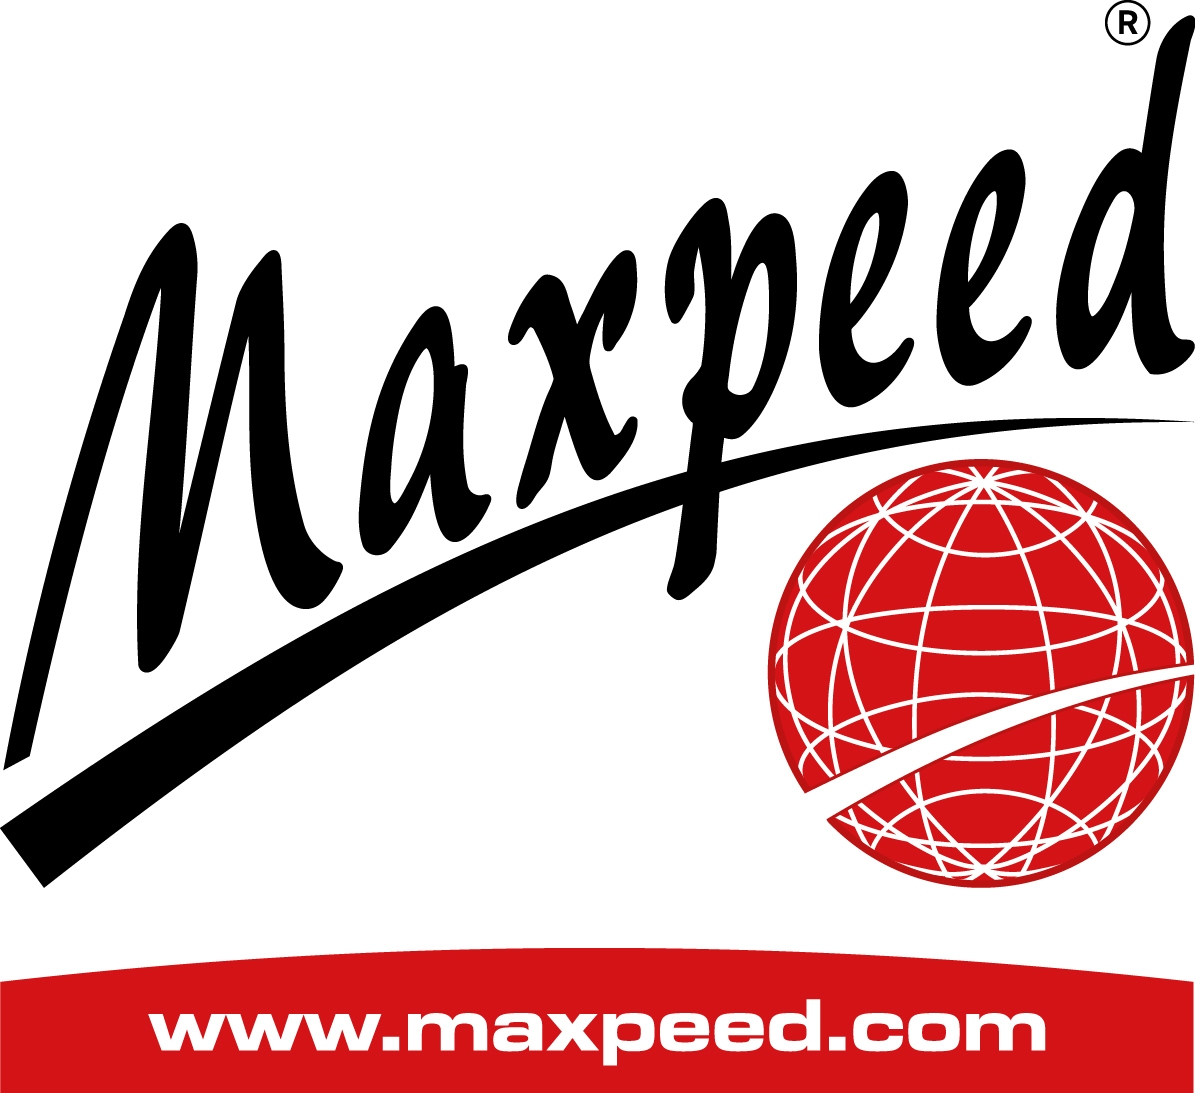 LOGOTIPO MAXPEED CON PÁG. WEB